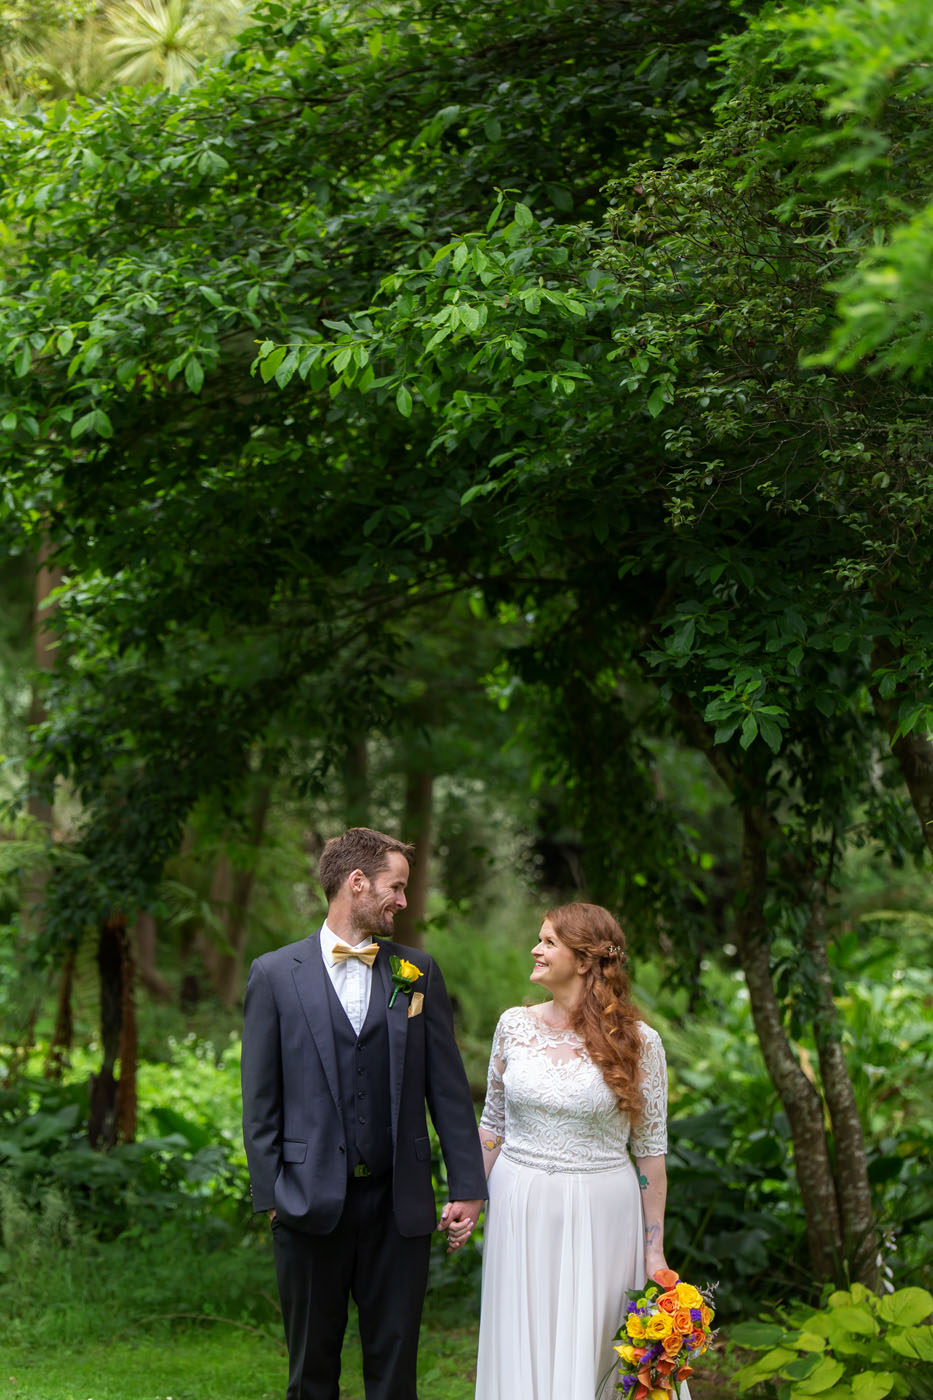 Laura and James-283.jpg